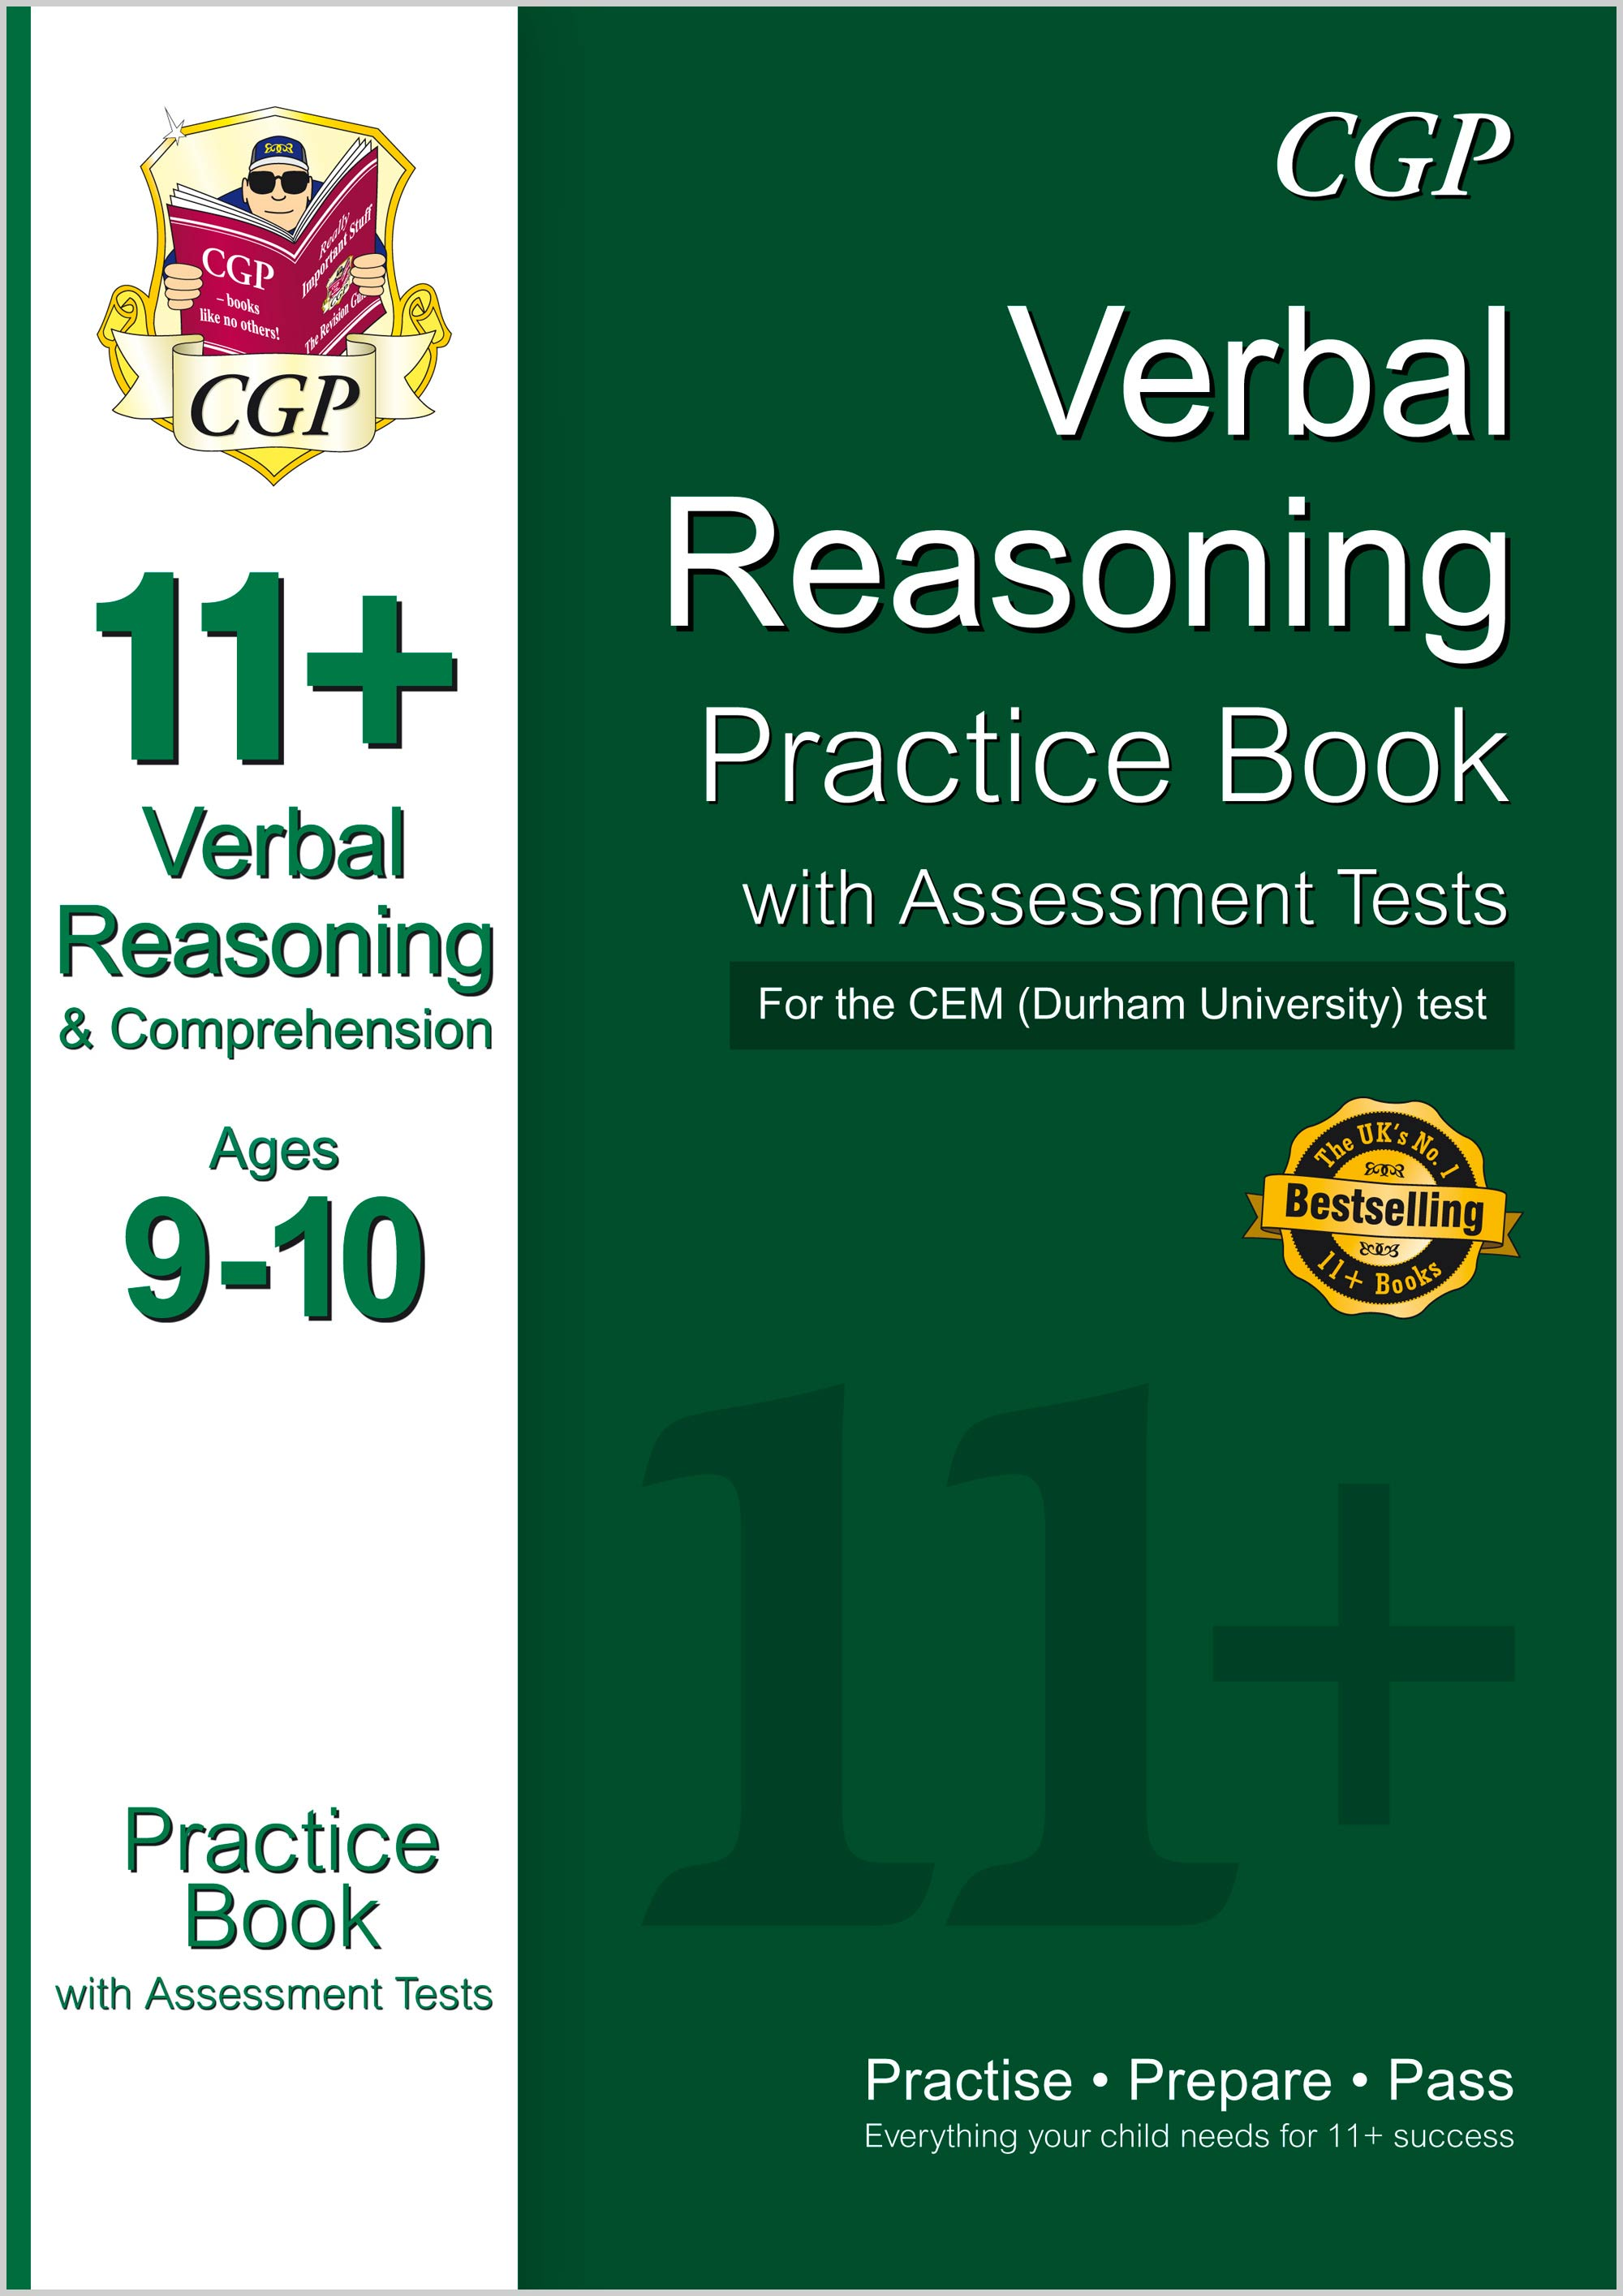 V5QDE1 - 11+ Verbal Reasoning Practice Book with Assessment Tests (Ages 9-10) for the CEM Test